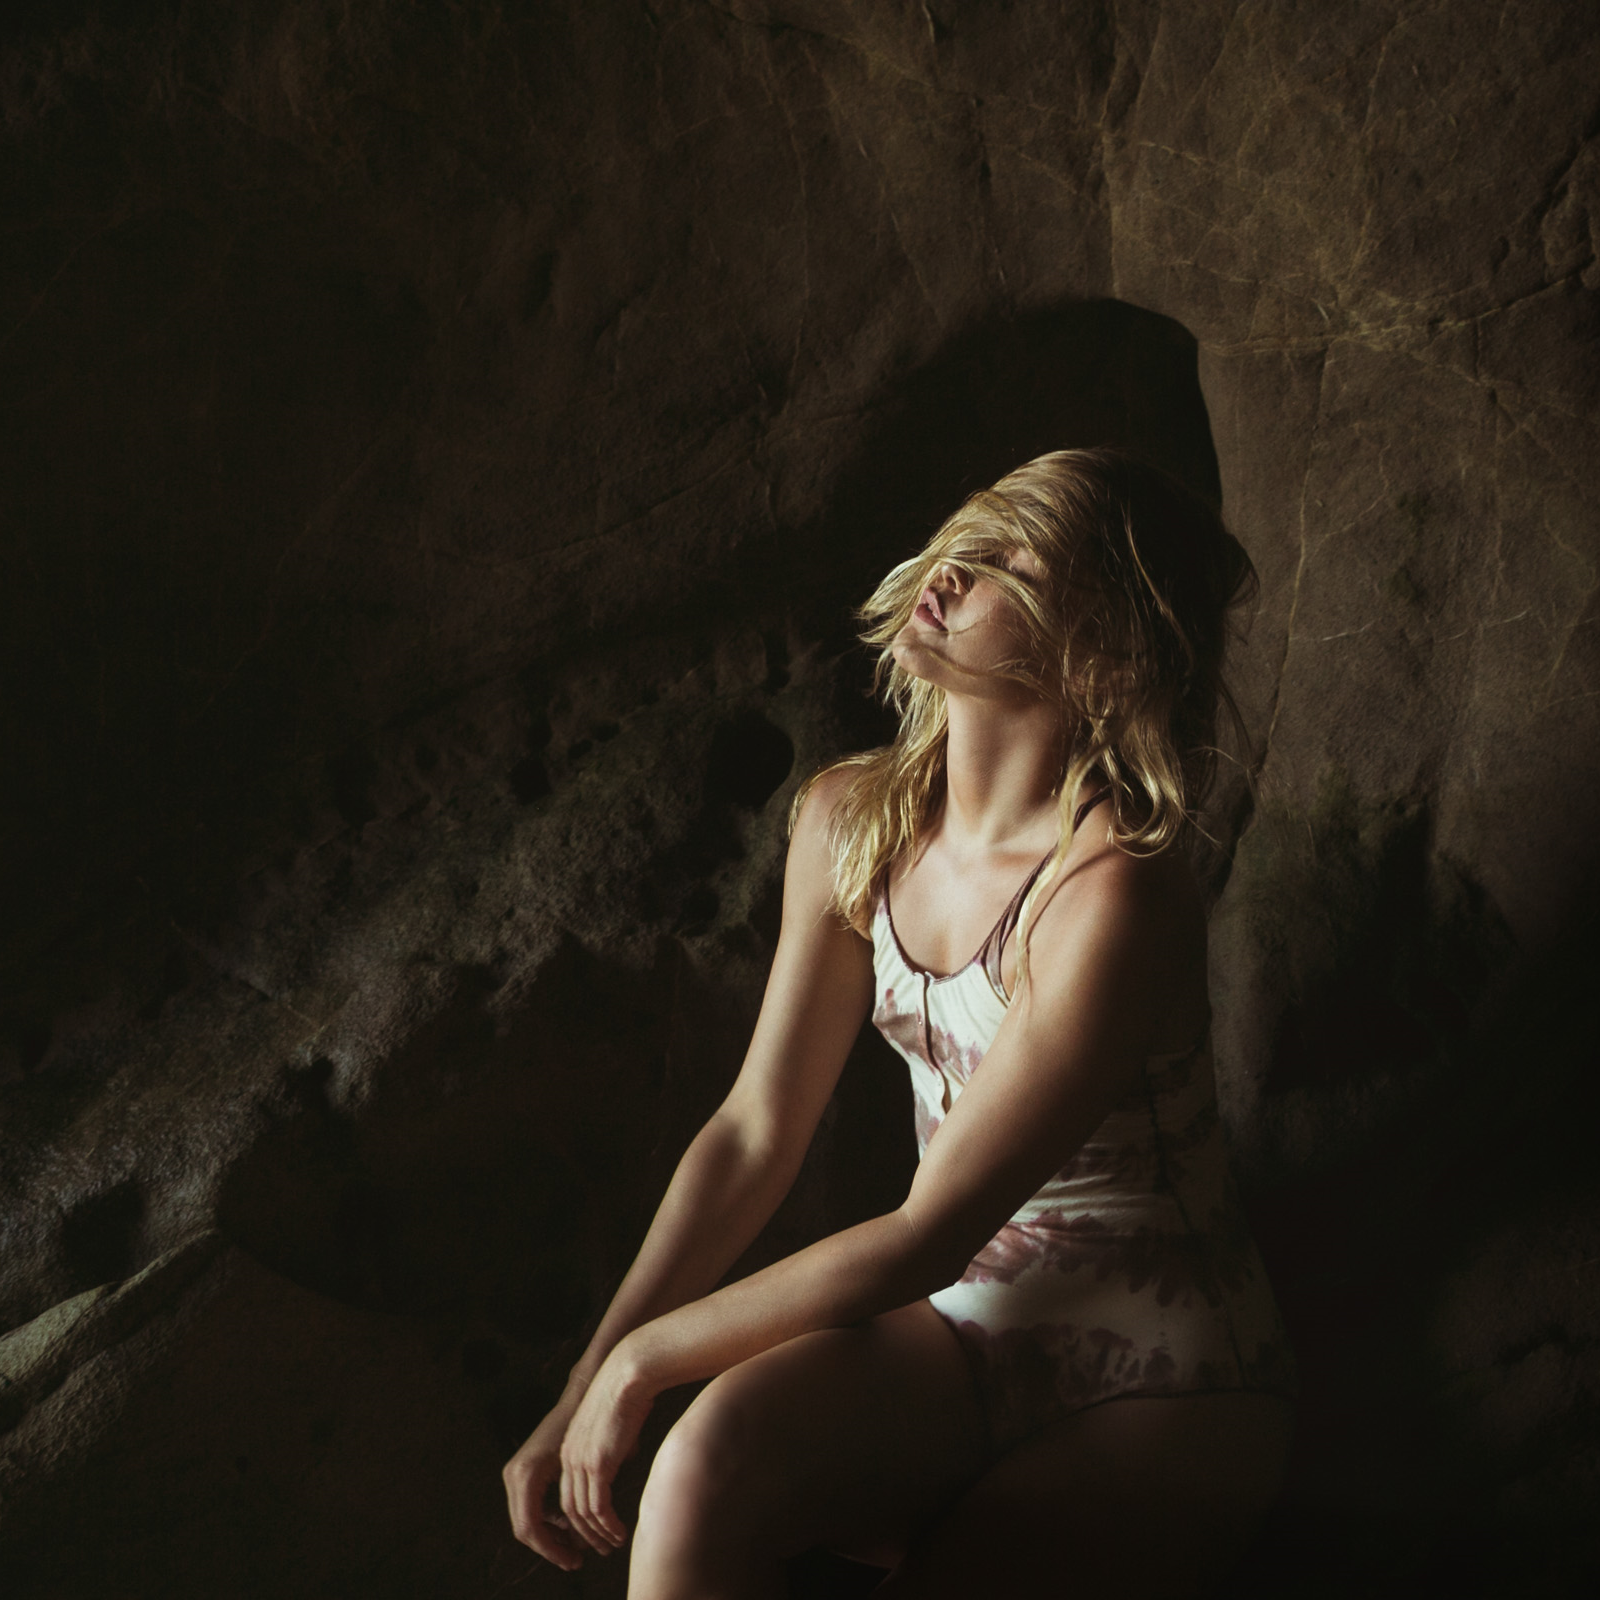 NICOLE IN THE CAVES